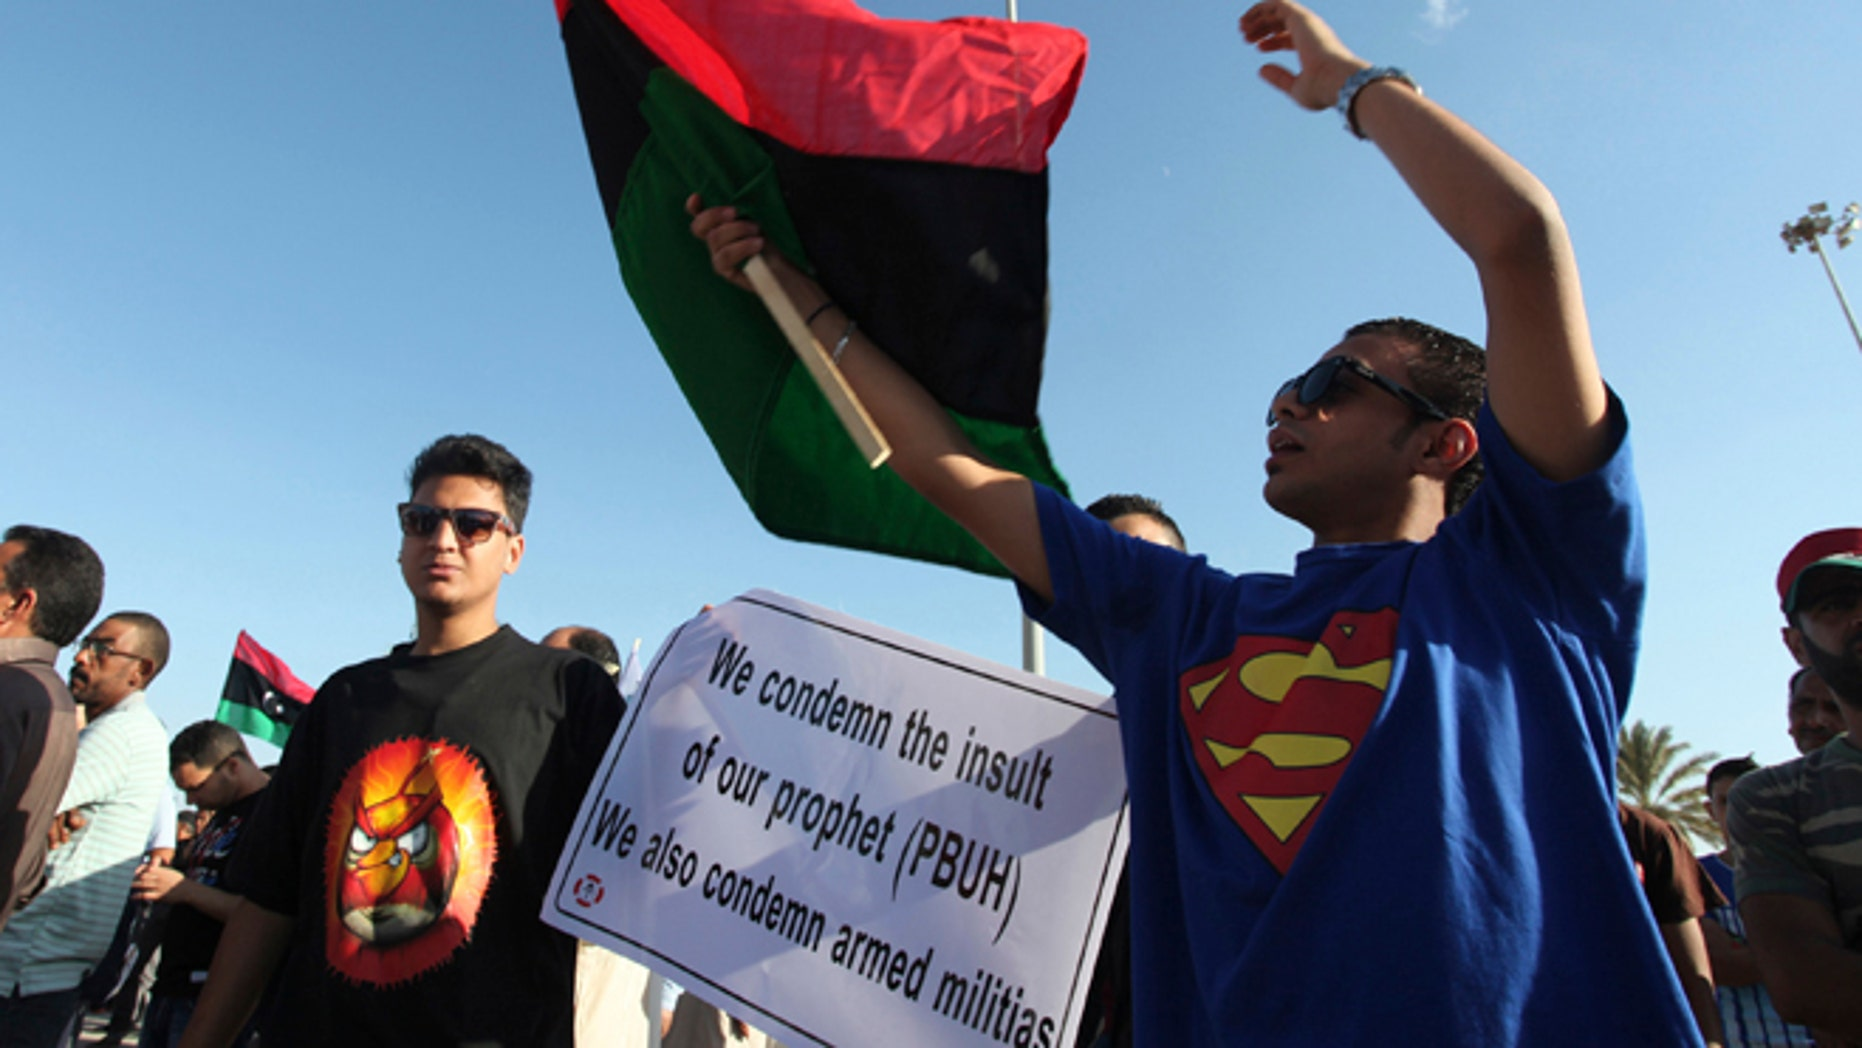 Sept. 21: Libyans participate in a protest against Ansar Al-Shariah, a militia of Islamic extremists, and other Islamic militias in Benghazi, Libya